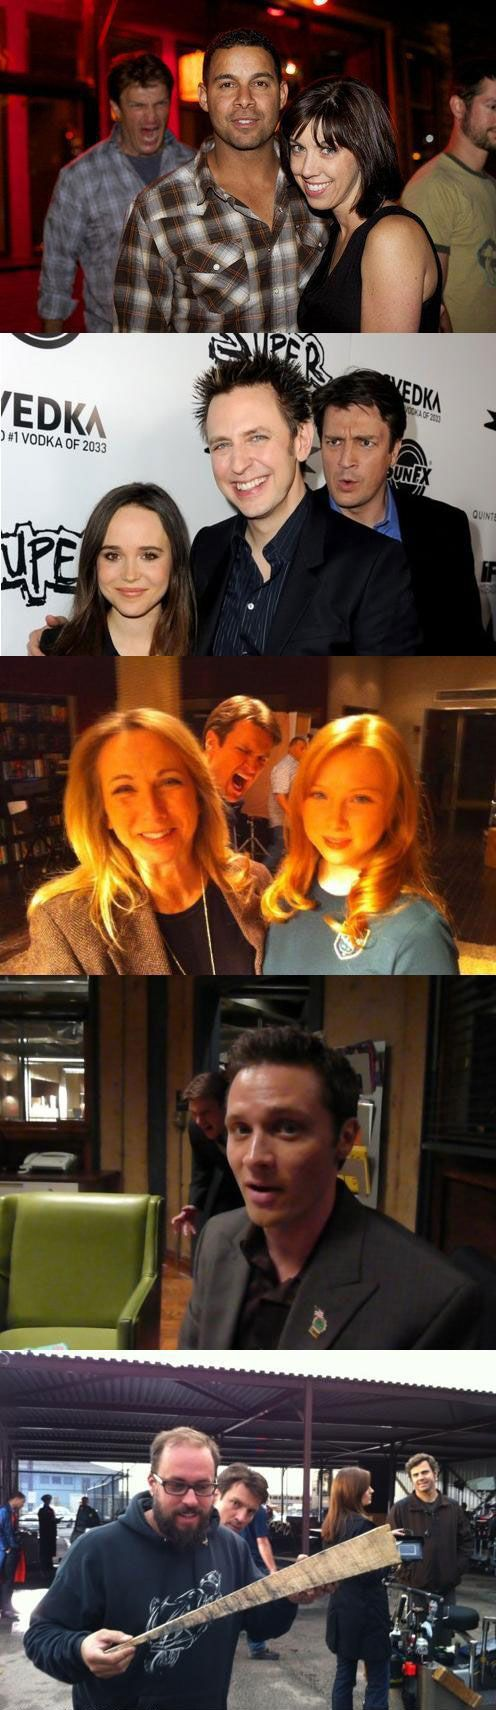 Nathan Fillion: expert photobomber.